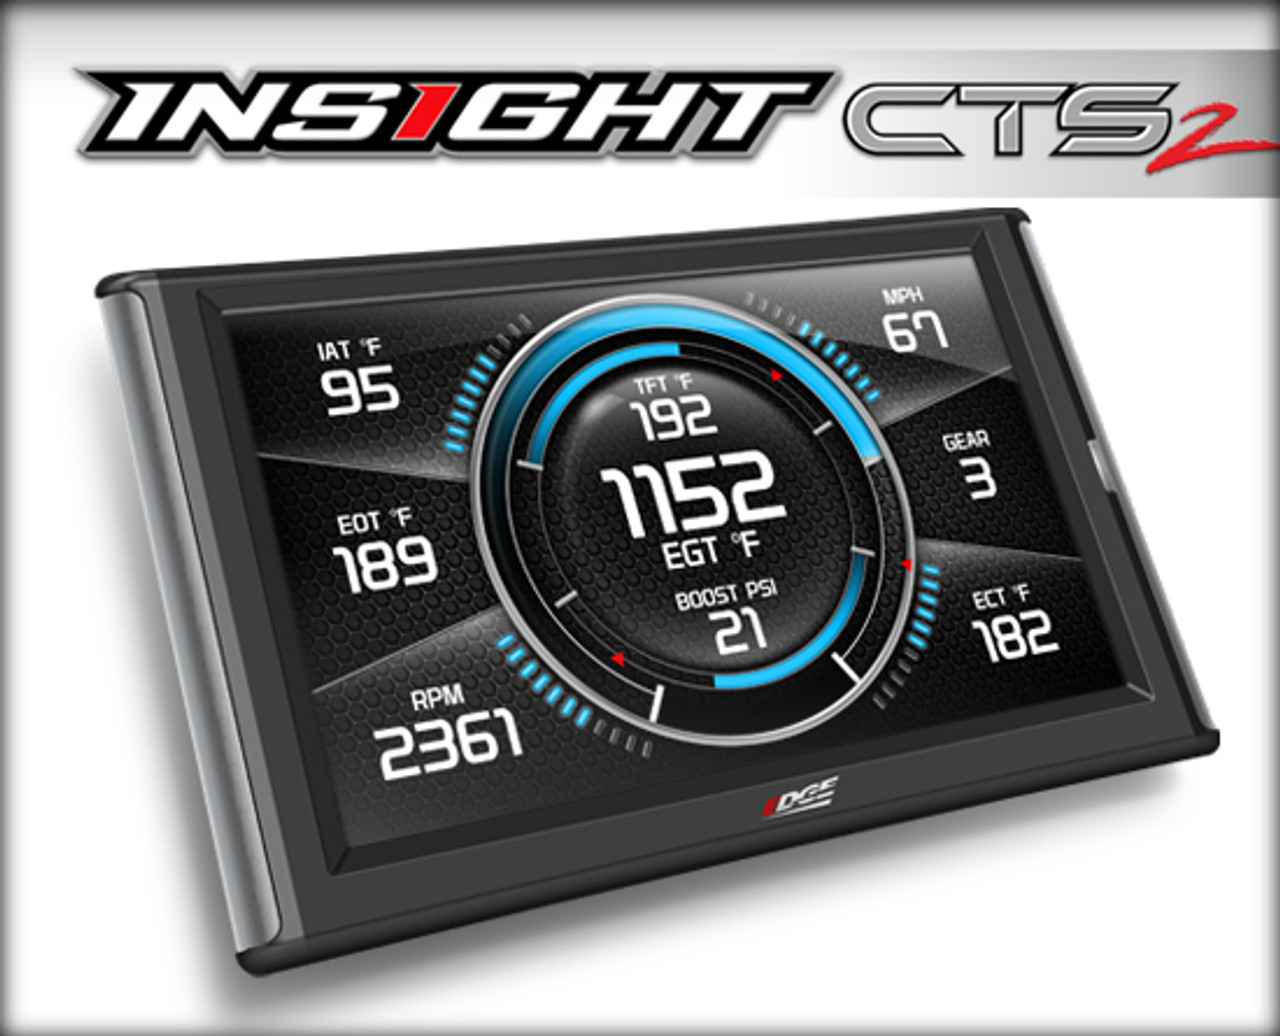 Edge Insight CTS2 Digital Gauge Display Color Touch Screen (Fits 1996 and  Newer OBDII-Enabled Vehicles)